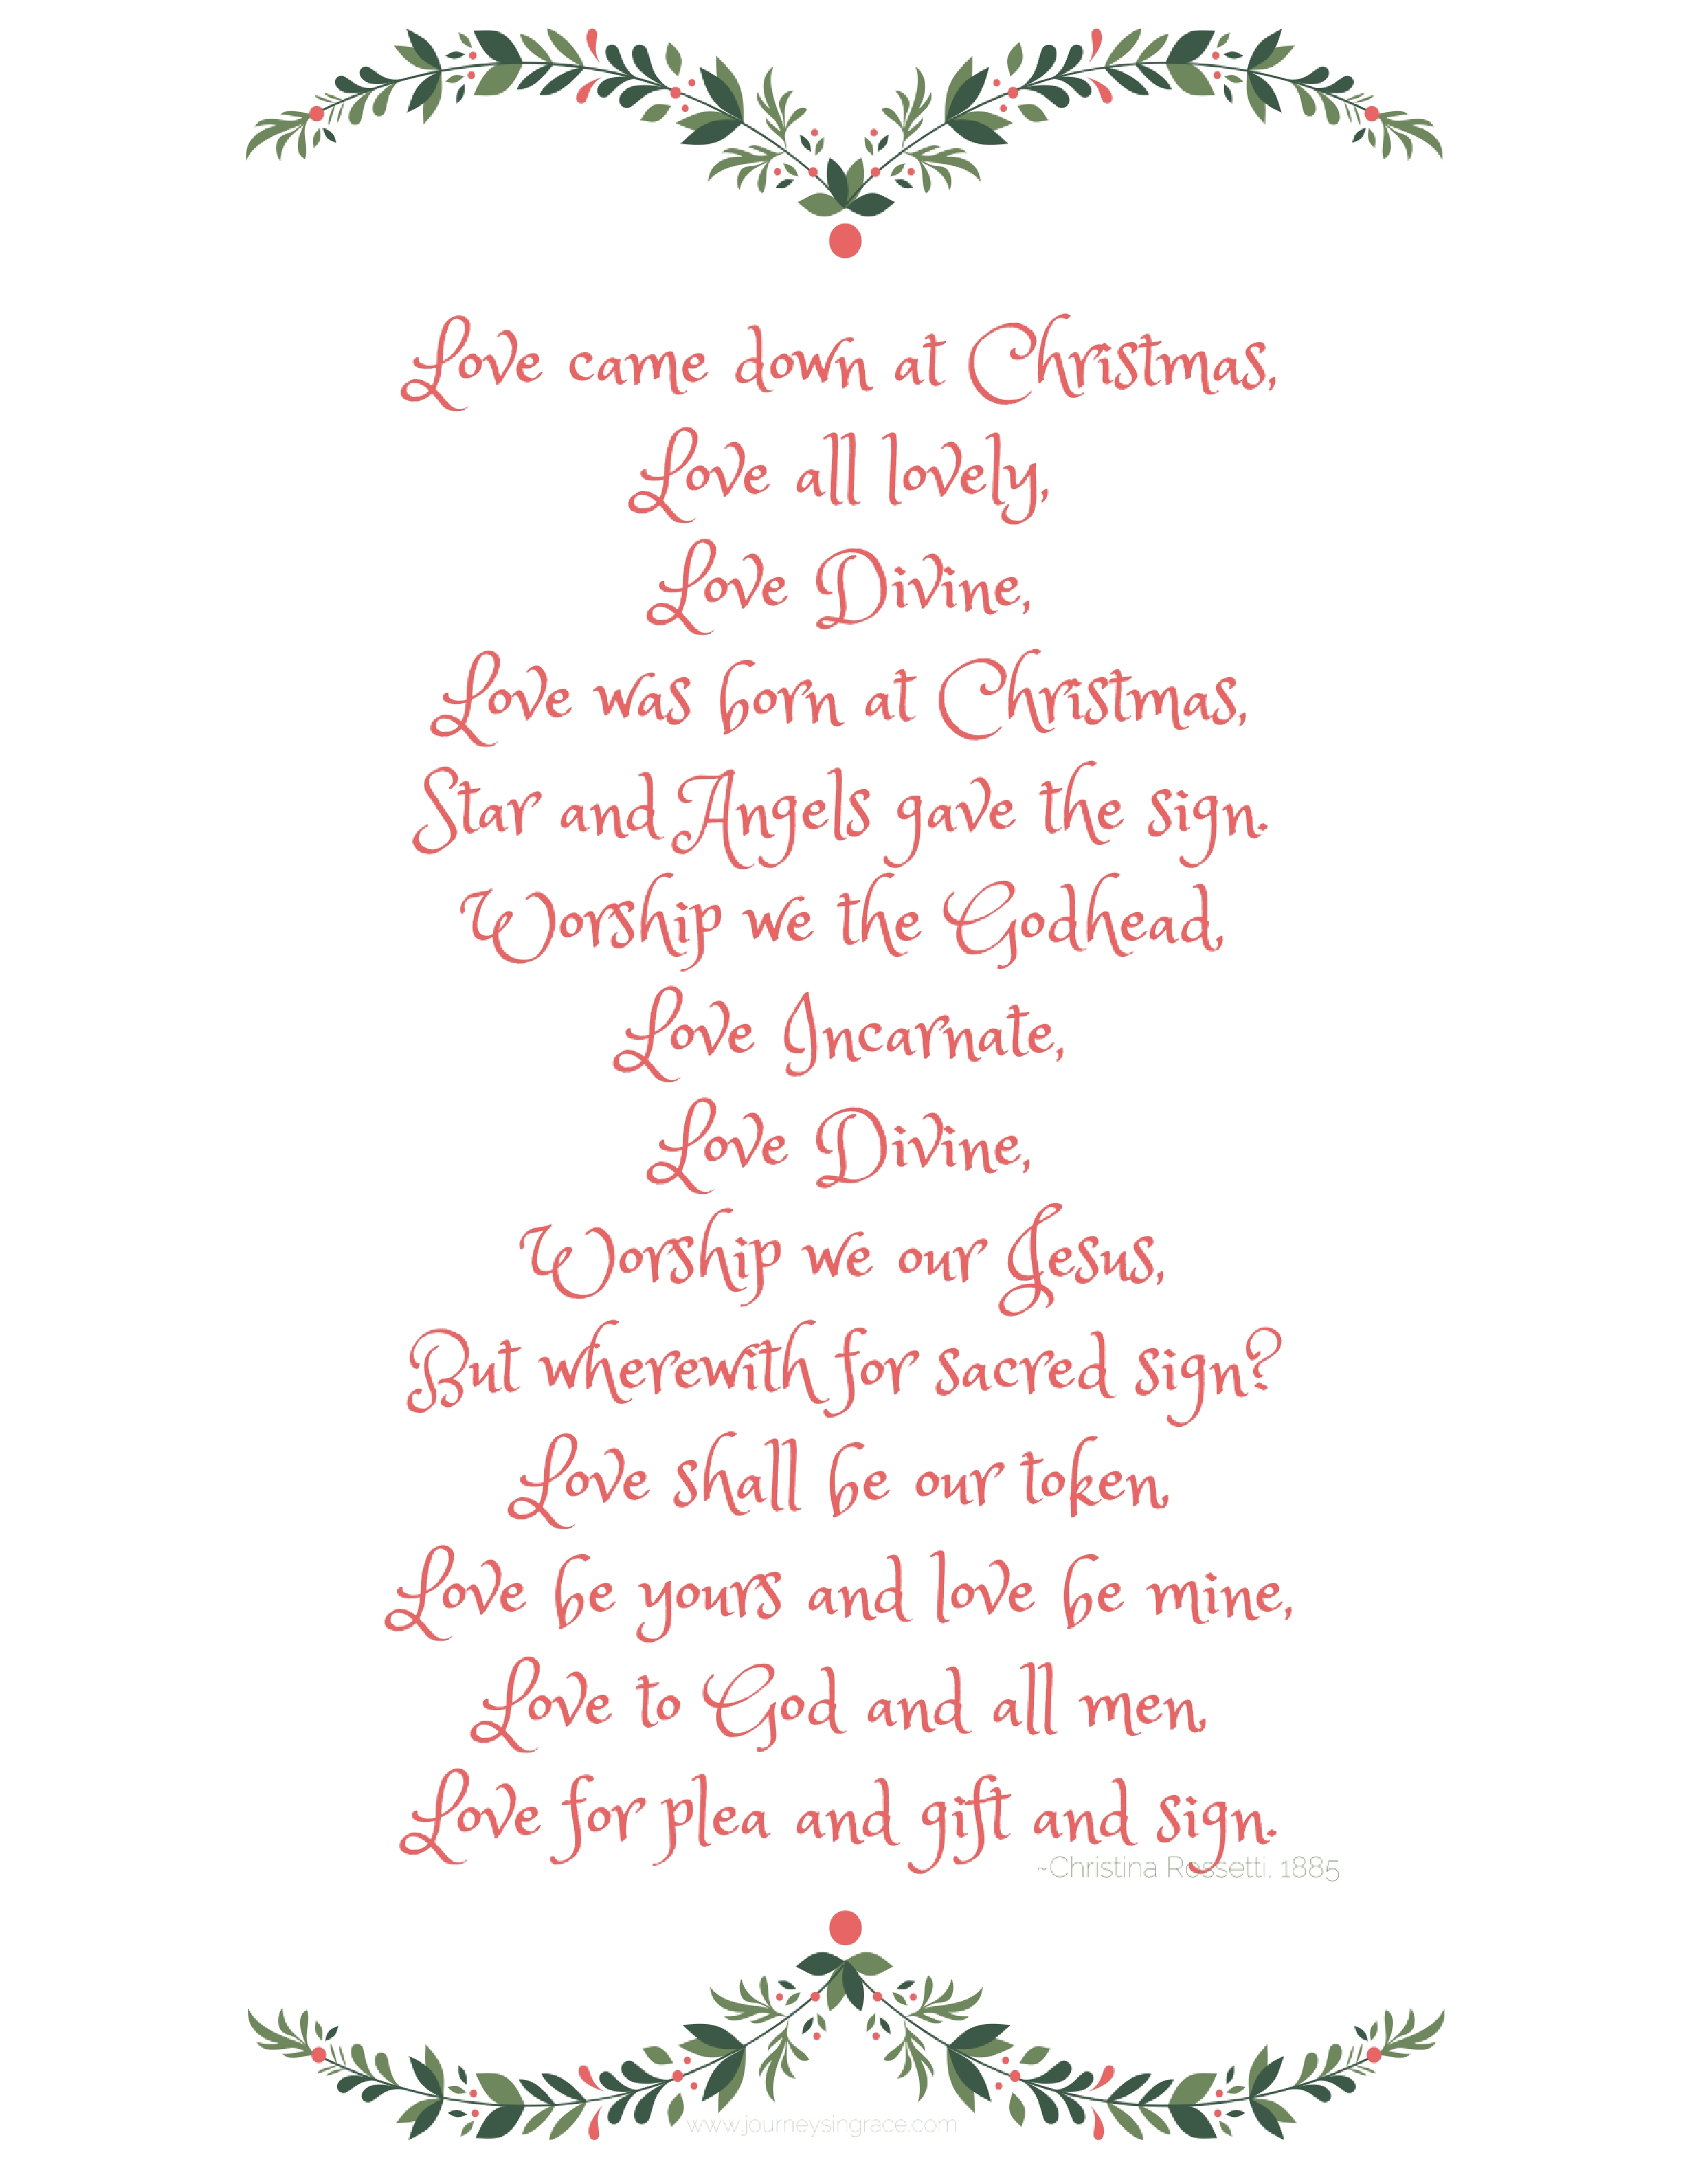 love came down at christmas it is the builder of hope the binding of peace and the broker for joy love came for your heart for you to be found and to